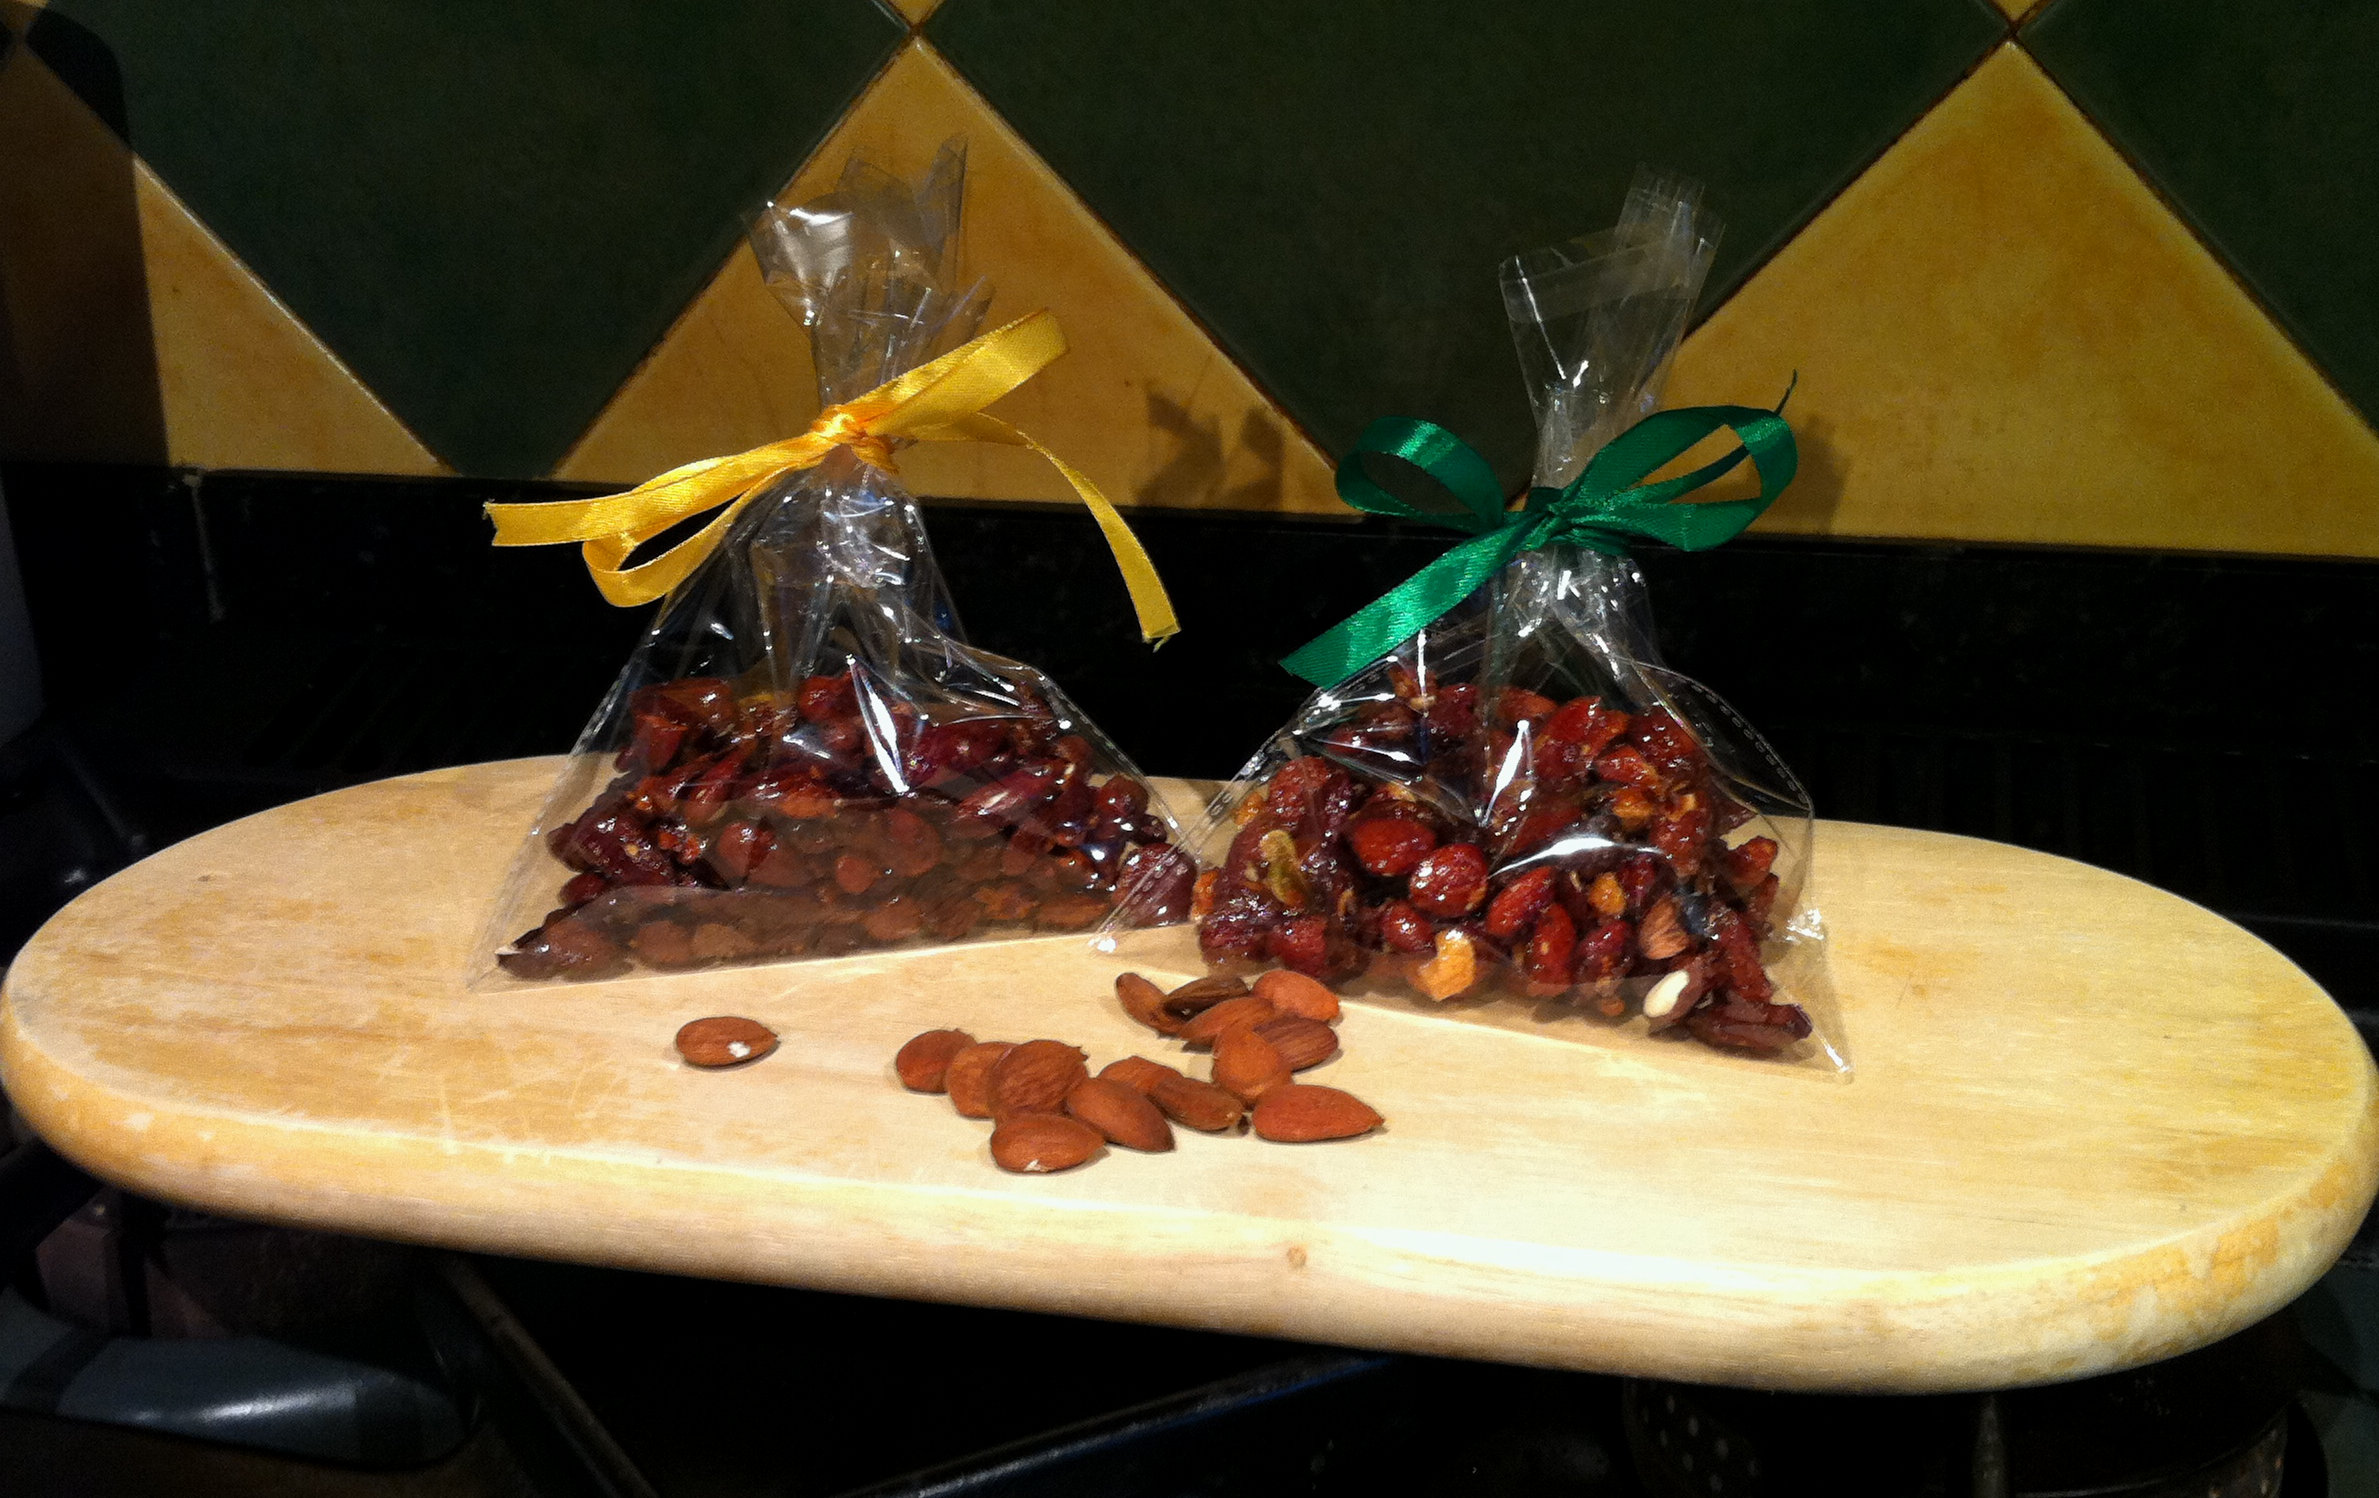 Almonds_for_guests_at_luxury_villa_rental_Ronda_Andalusia_Spain